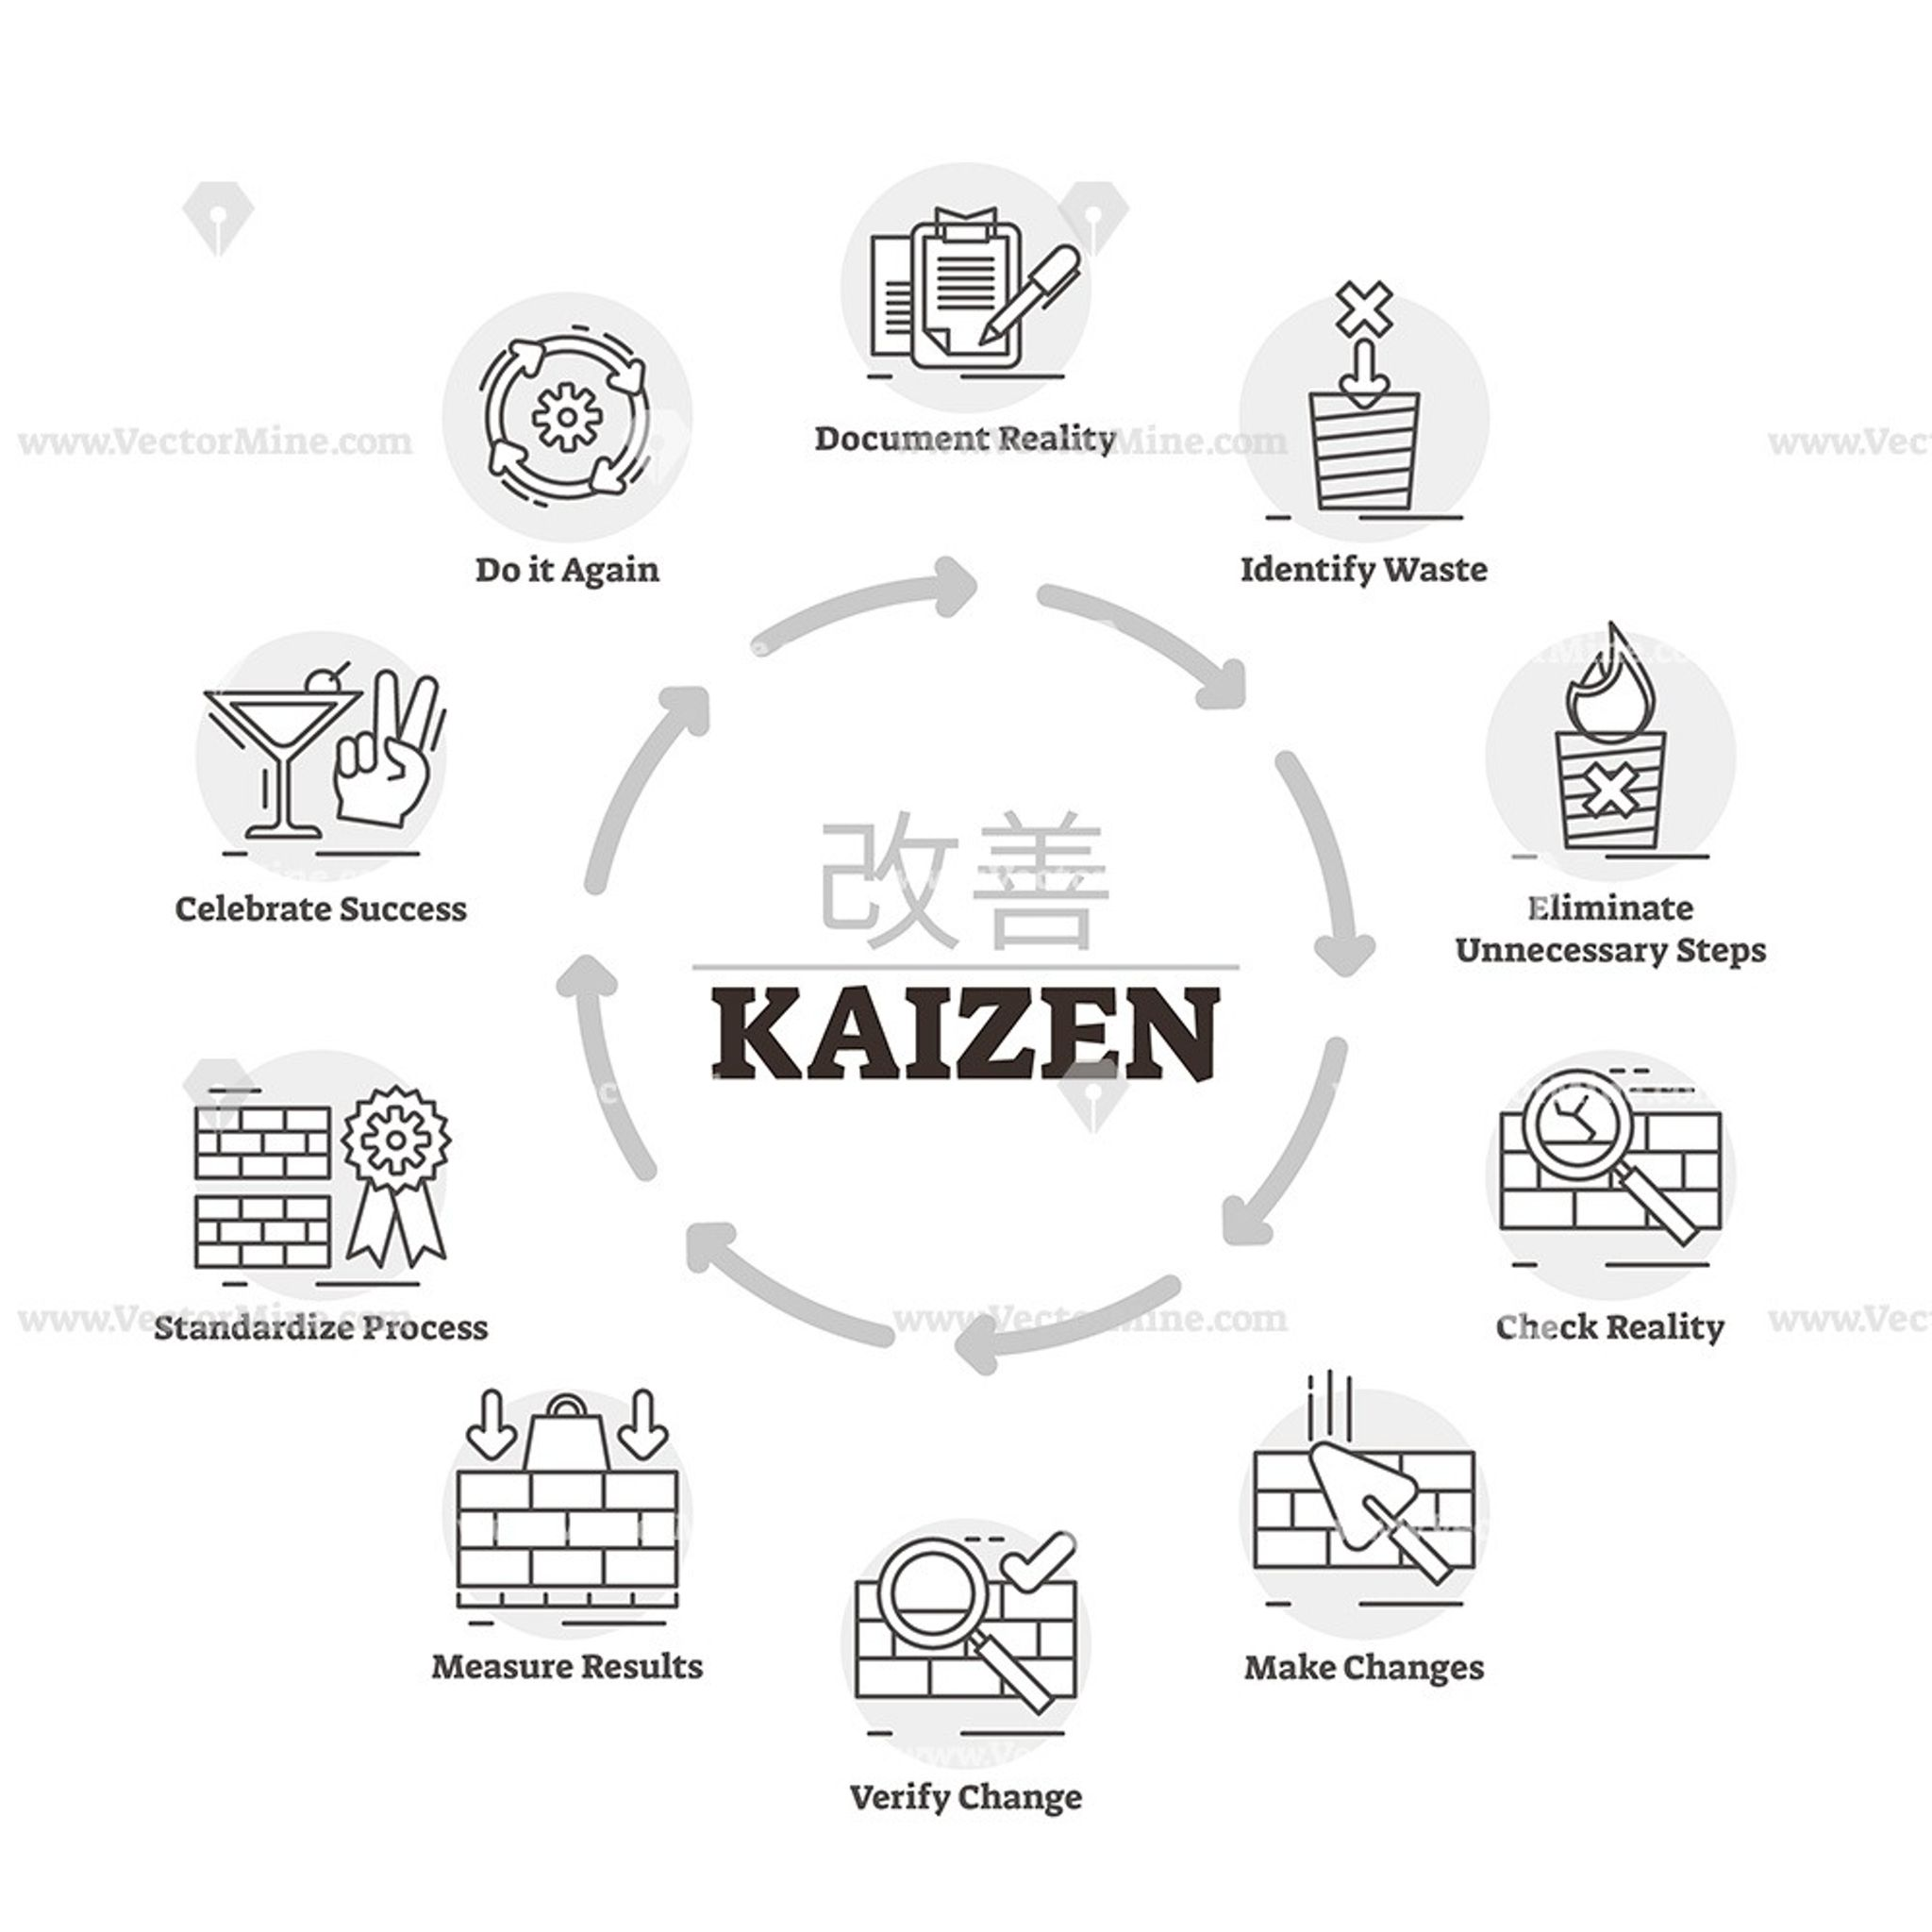 Kaizen Outline Vector Illustration Diagram With Icons